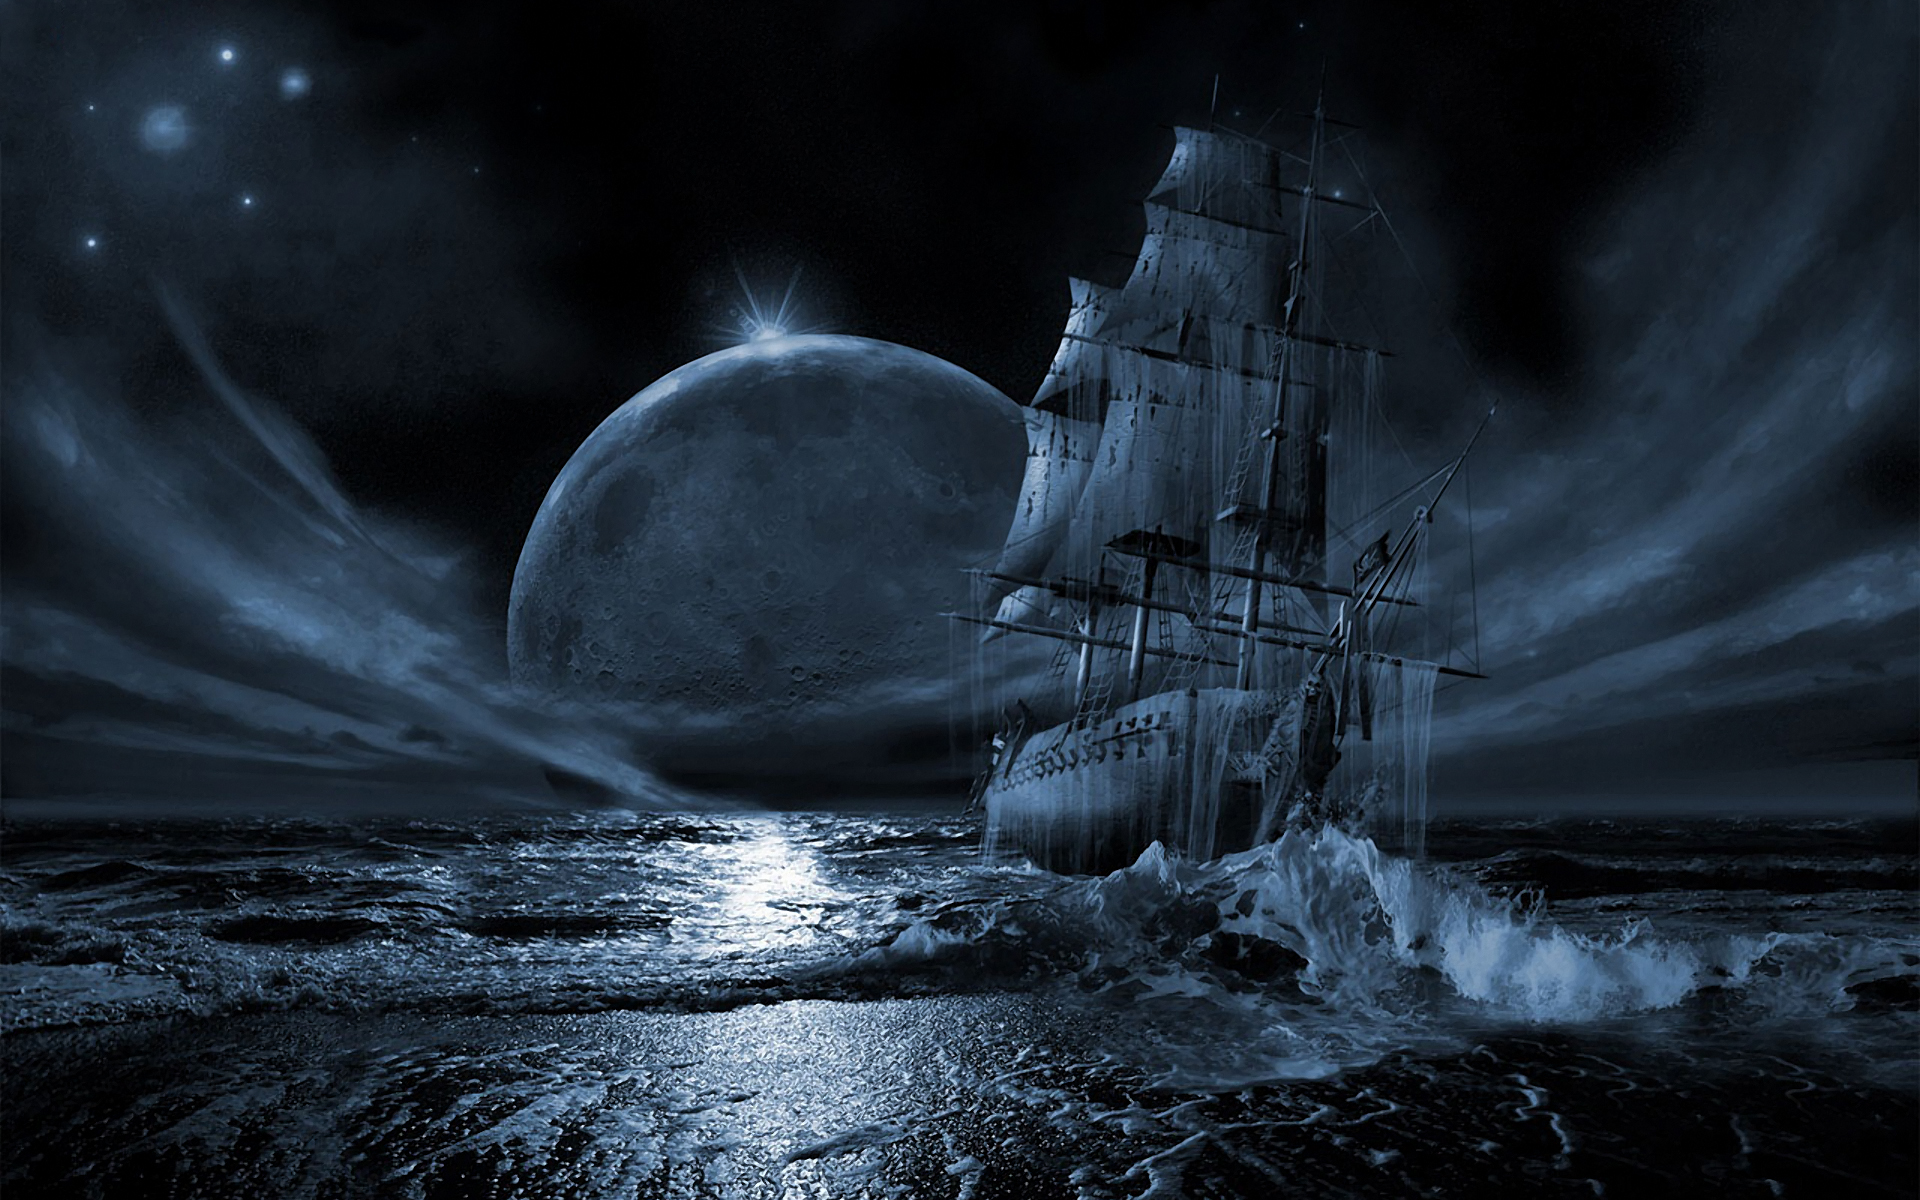 Ship Wallpaper Images in HD Available Here For Download 1920x1200